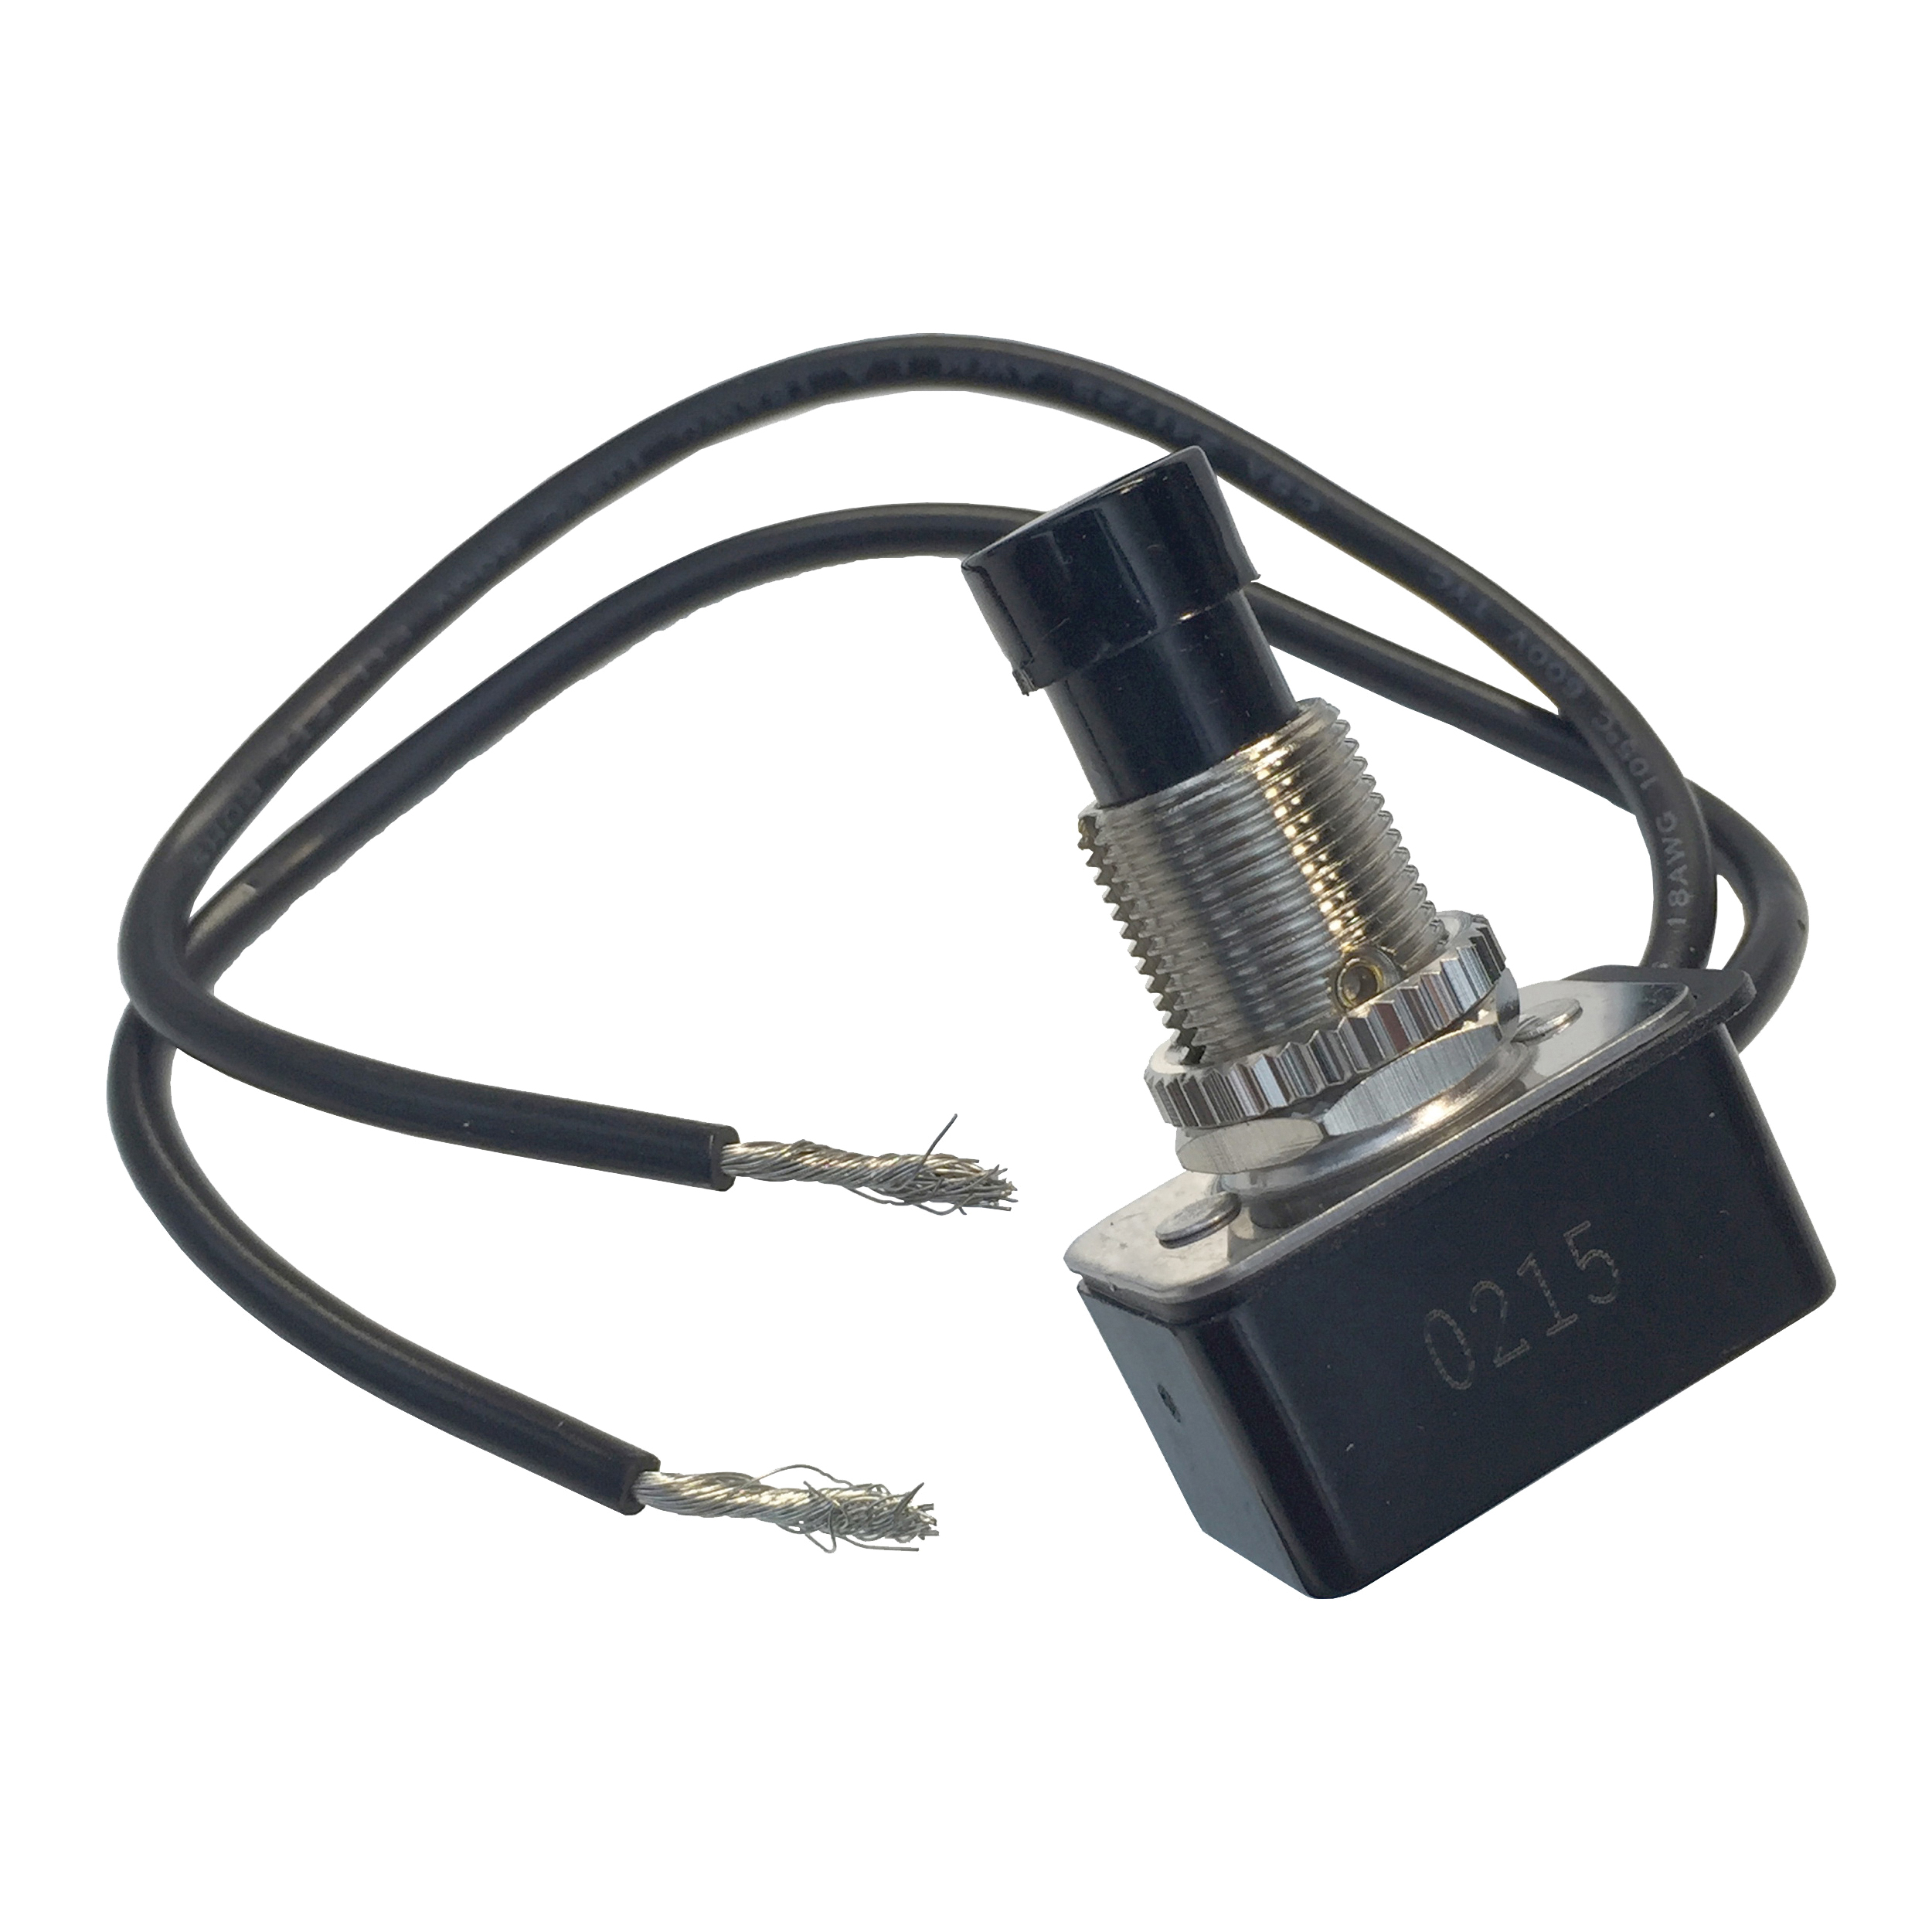 Picture of GB GSW-21 Push-Button Switch, 4/8/10 A, 125/250 V, SPST, Lead Wire Terminal, Plastic Housing Material, Chrome